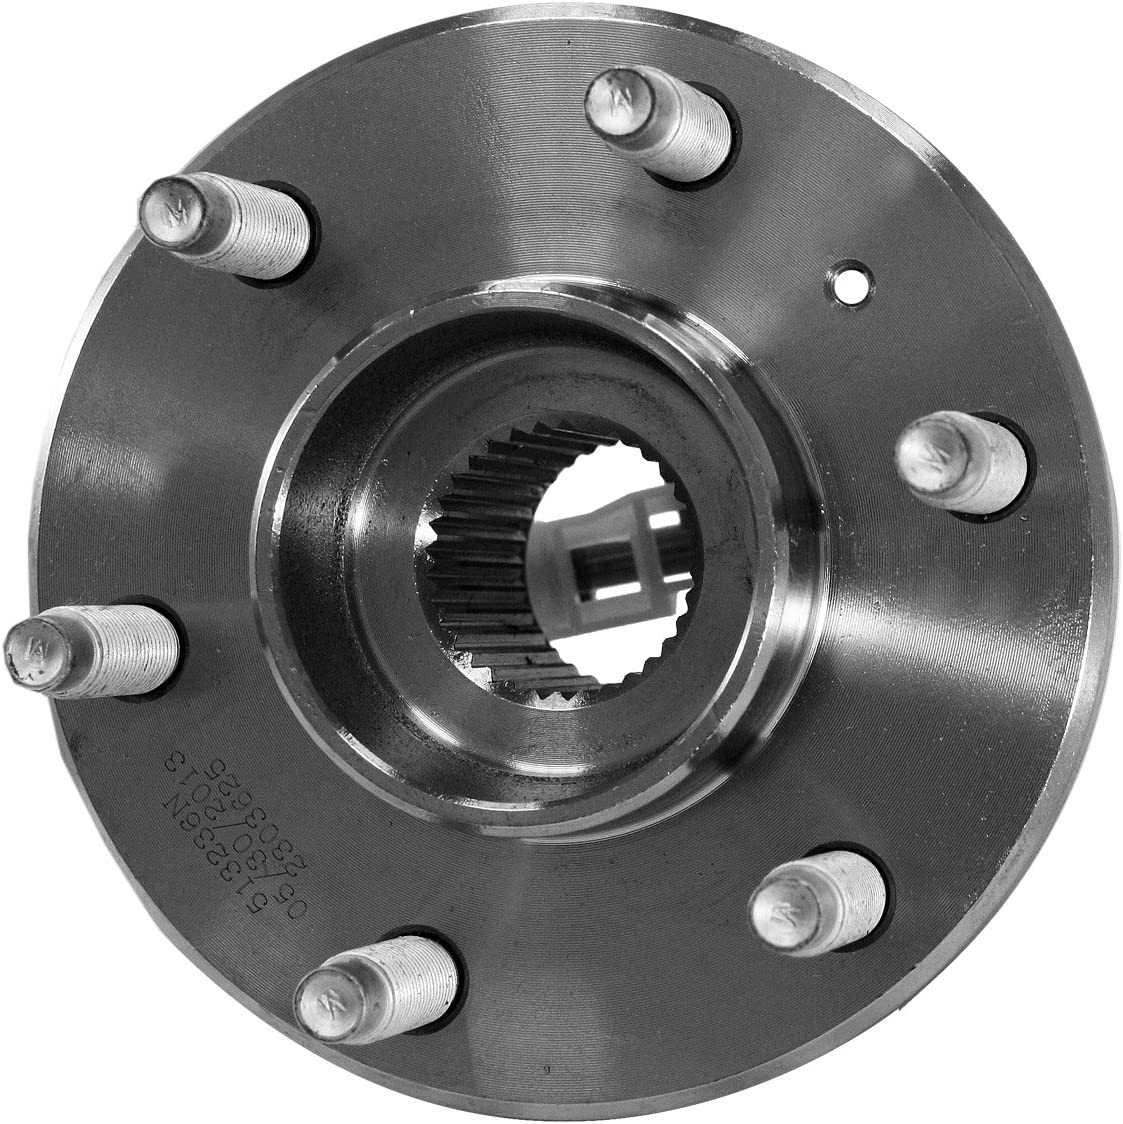 513236HD x 1 New Hub Assembly Front Left Or Right Side 6 Lug With ABS